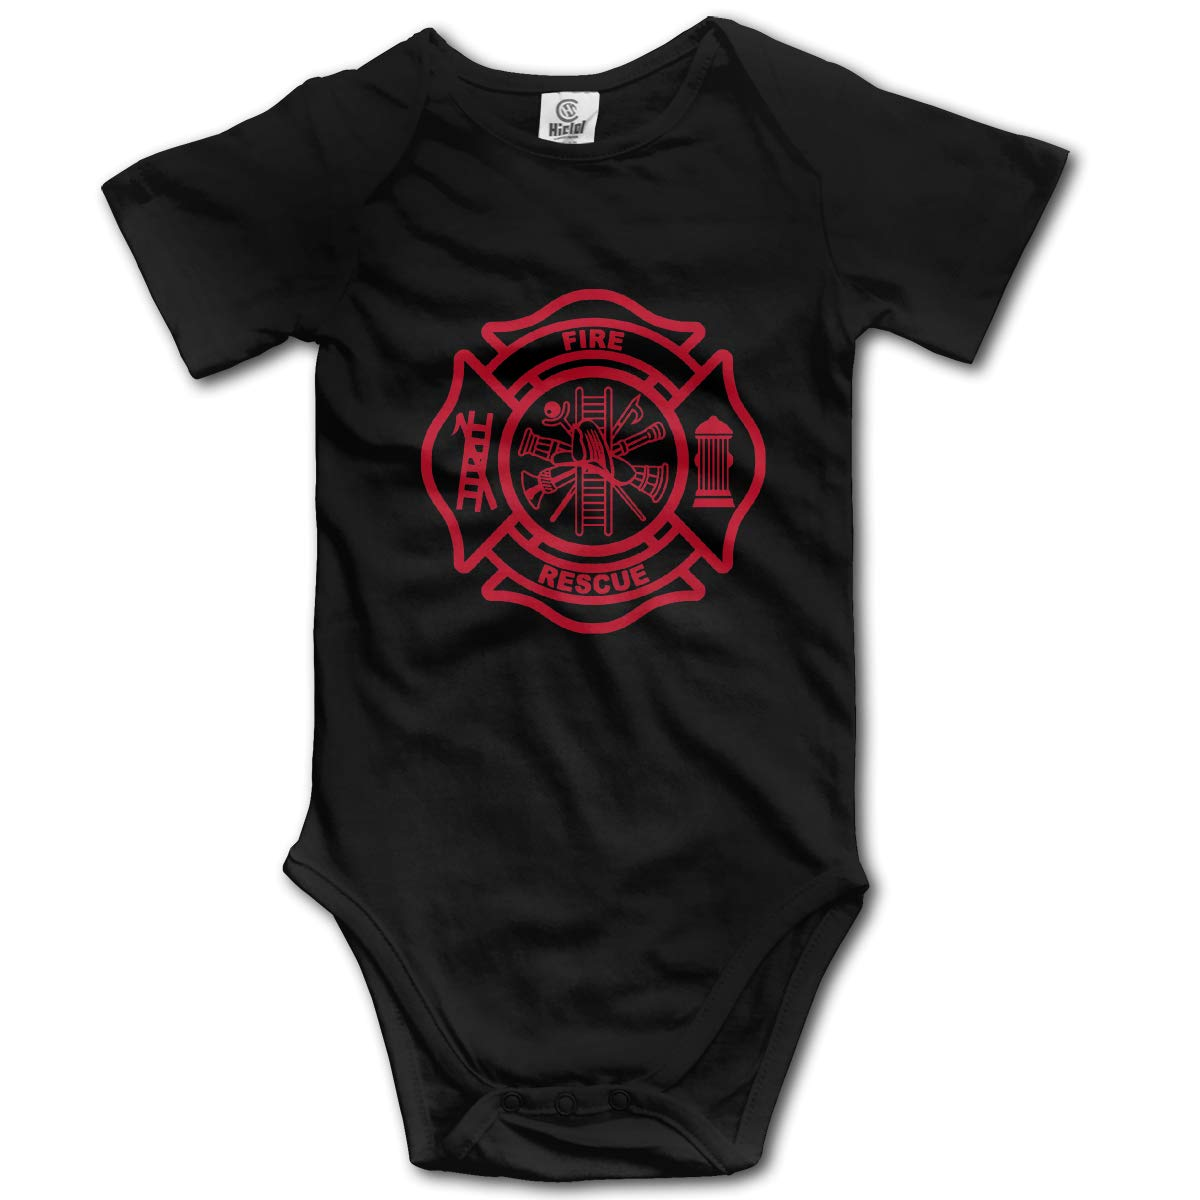 Coollifea Firefighter Baby Romper 0-18 Months Newborn Baby Girls Boys Layette Rompers Black